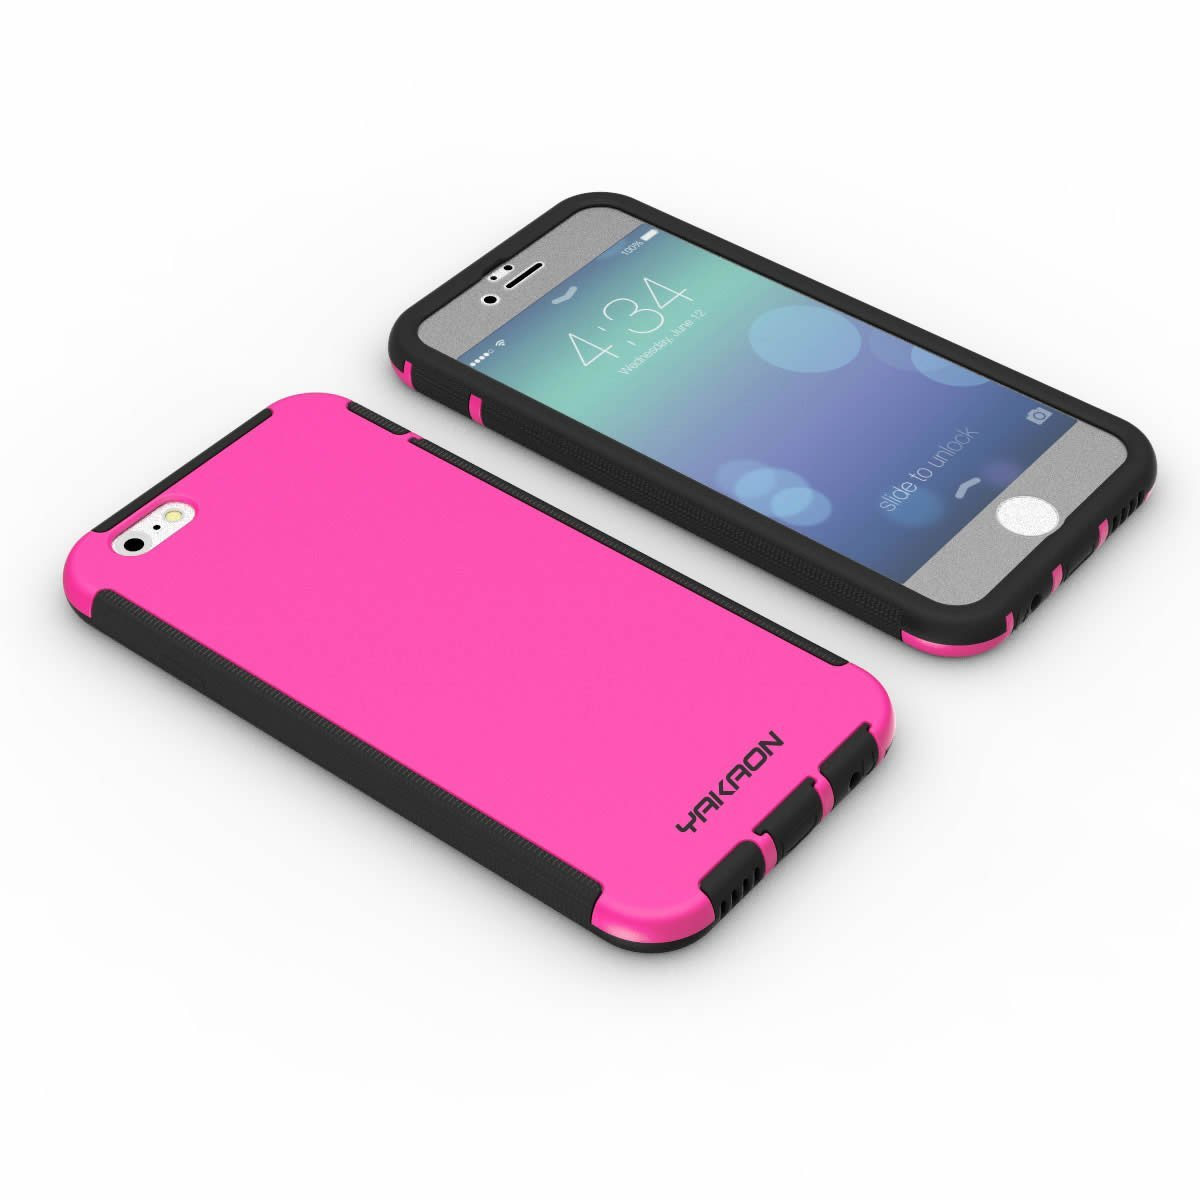 Durable Shatterproof, Dustproof, Shockproof Protective Case for iPhone 5S 2